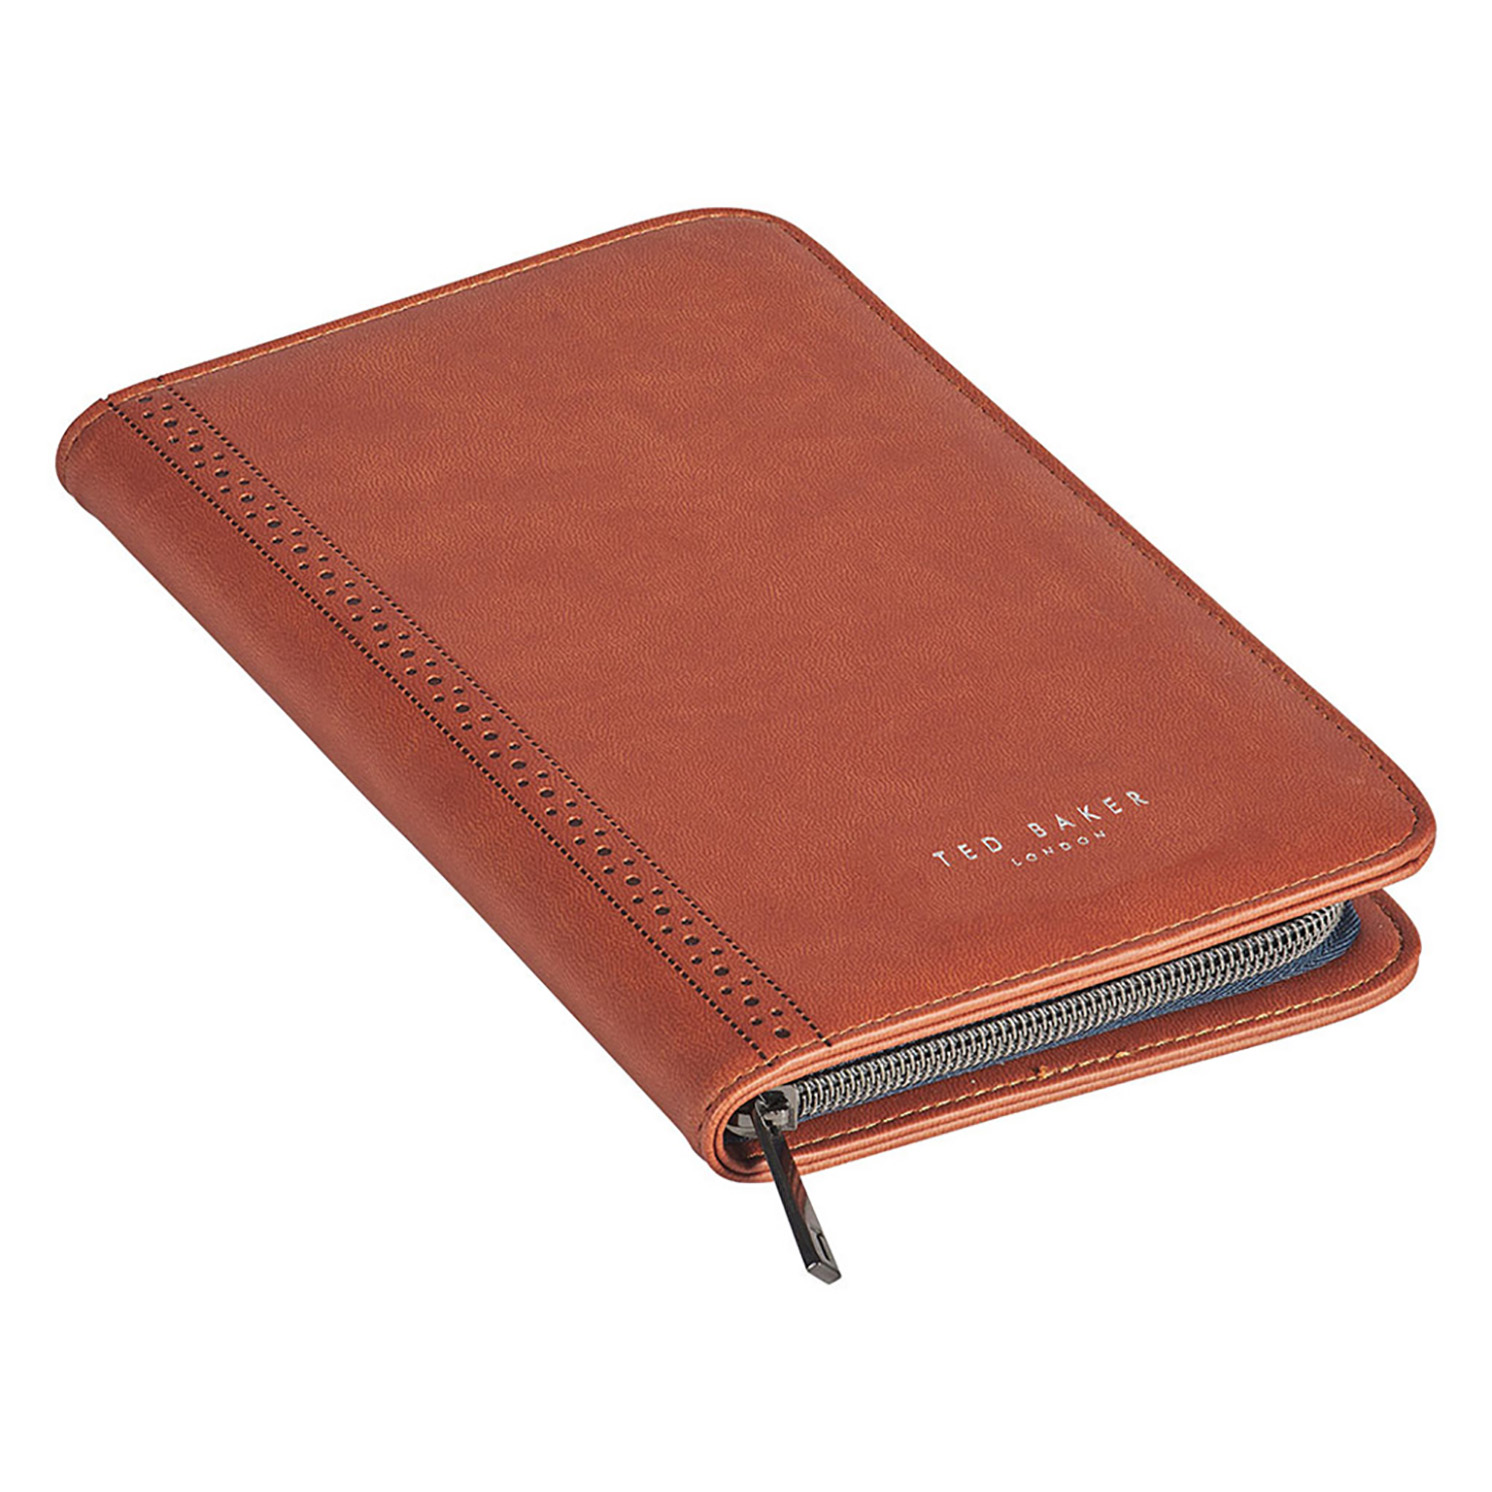 Ted Baker – Tan Brogue Travel Documents Holder/Organiser with Pen